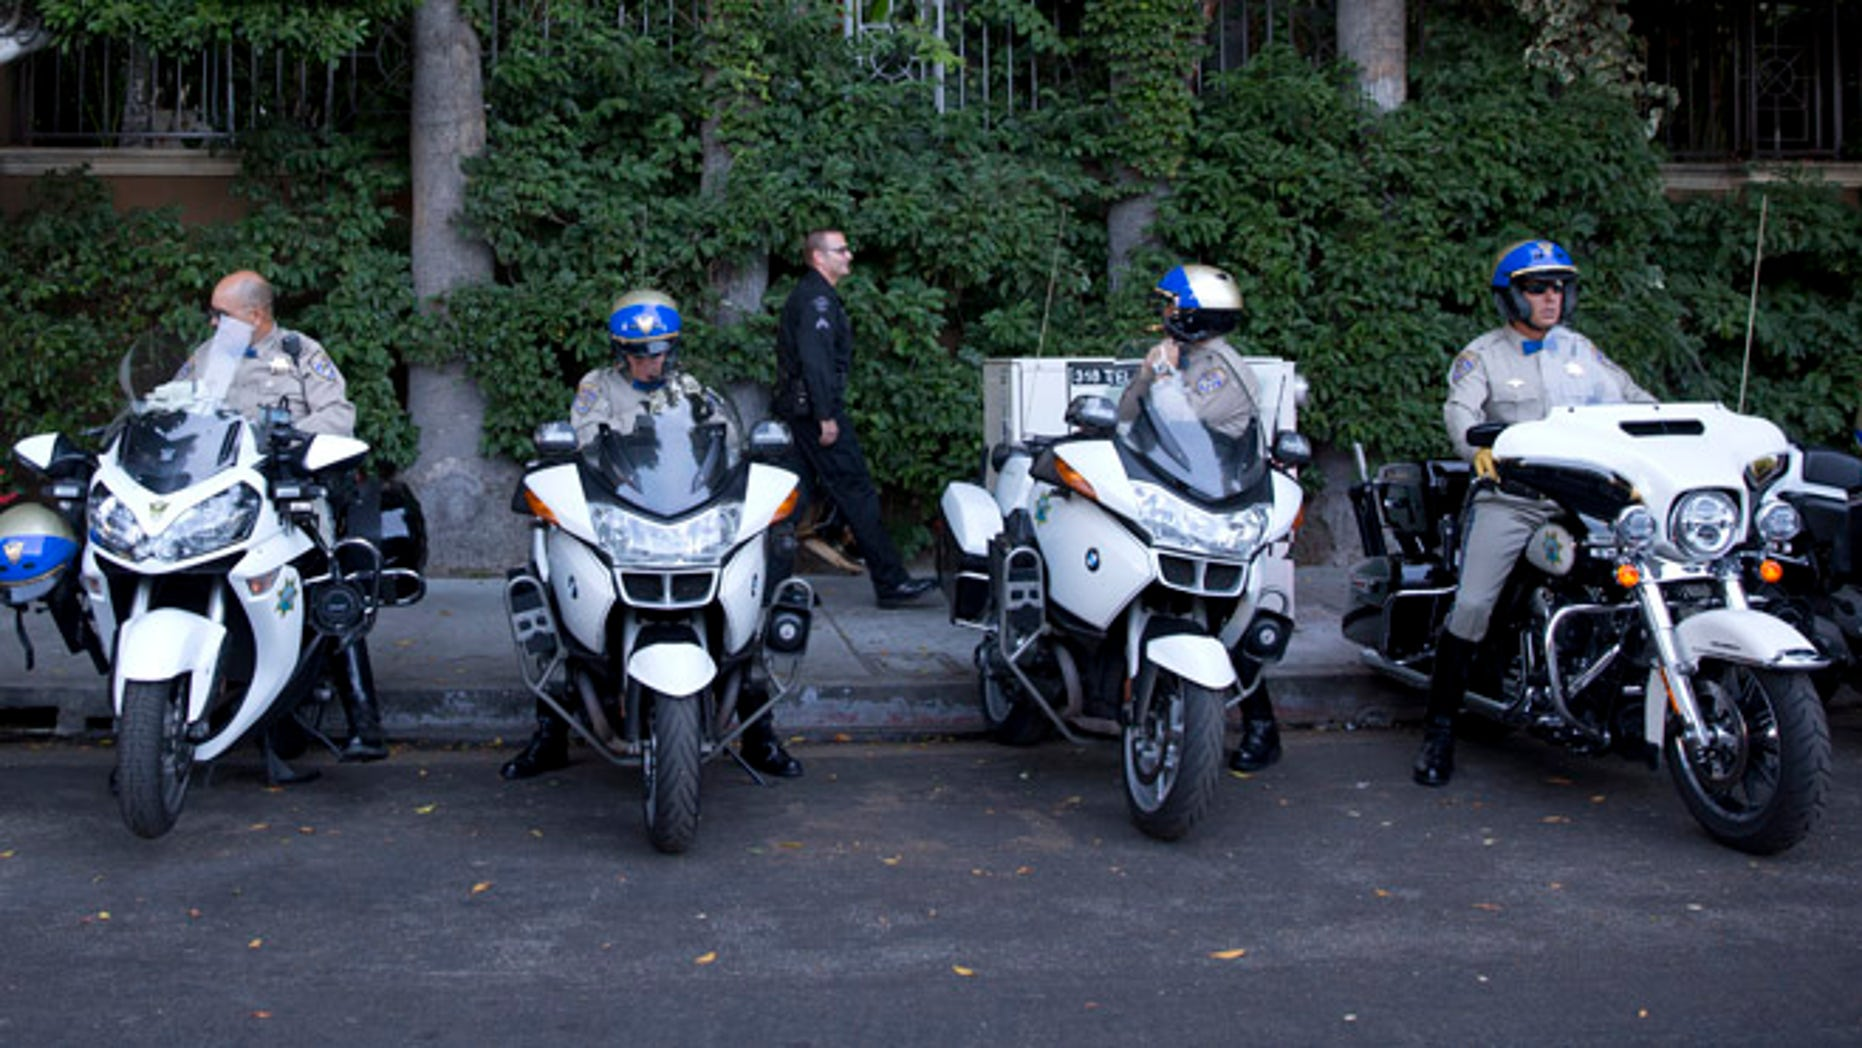 July 23, 2014: California Highway Patrol officers prepare to accompany the motorcade of President Barack Obama to a fundraising event in Los Angeles, the final city in his three-day West Coast trip to Seattle, San Francisco and Los Angeles. (AP)